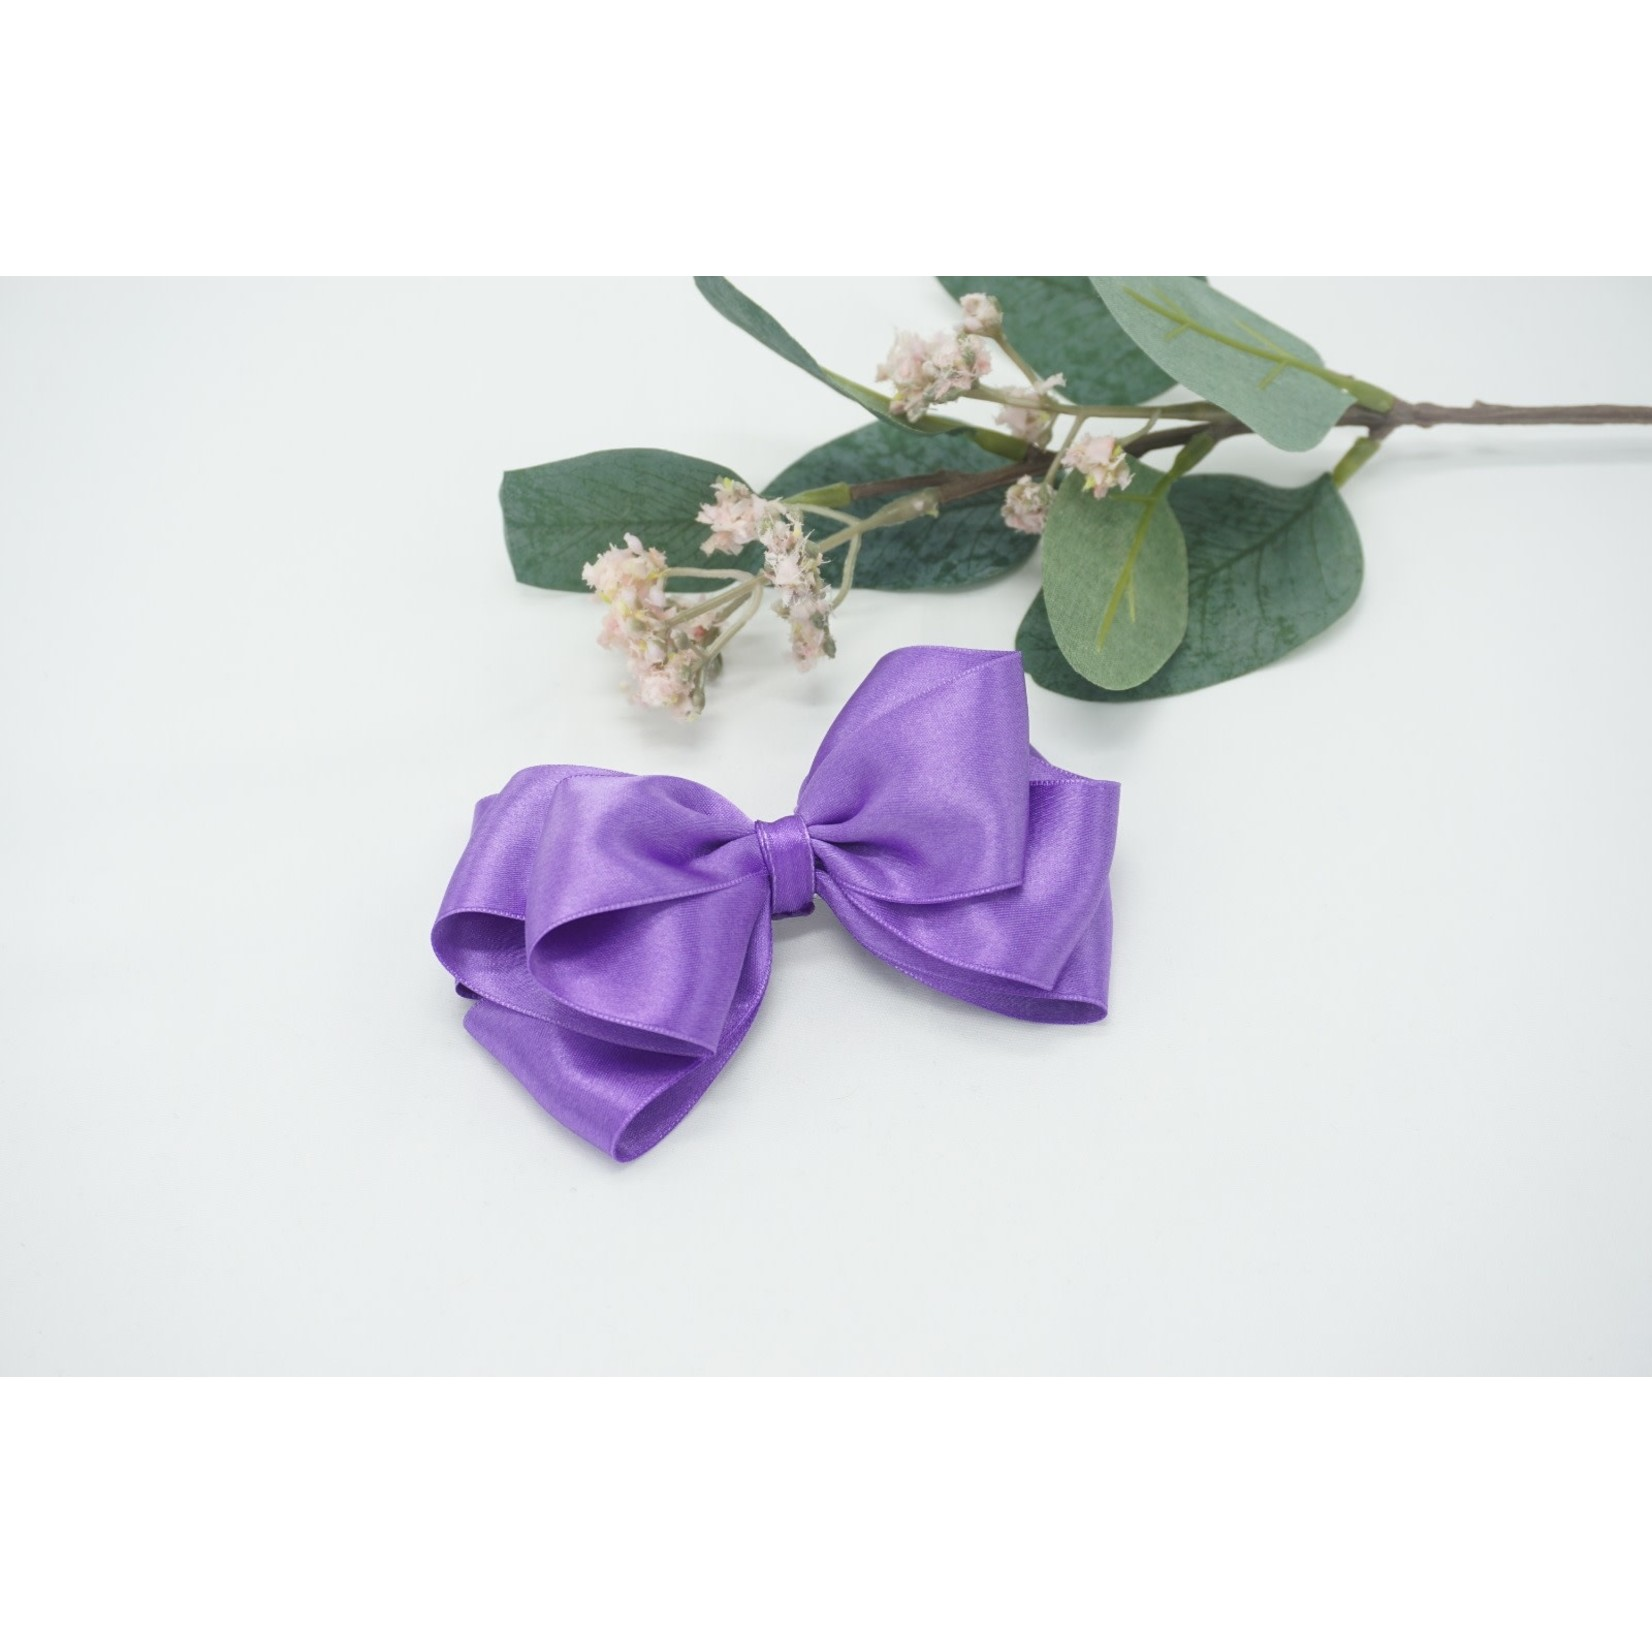 Copy of Butterfly Bow - Moss Green 12 cm